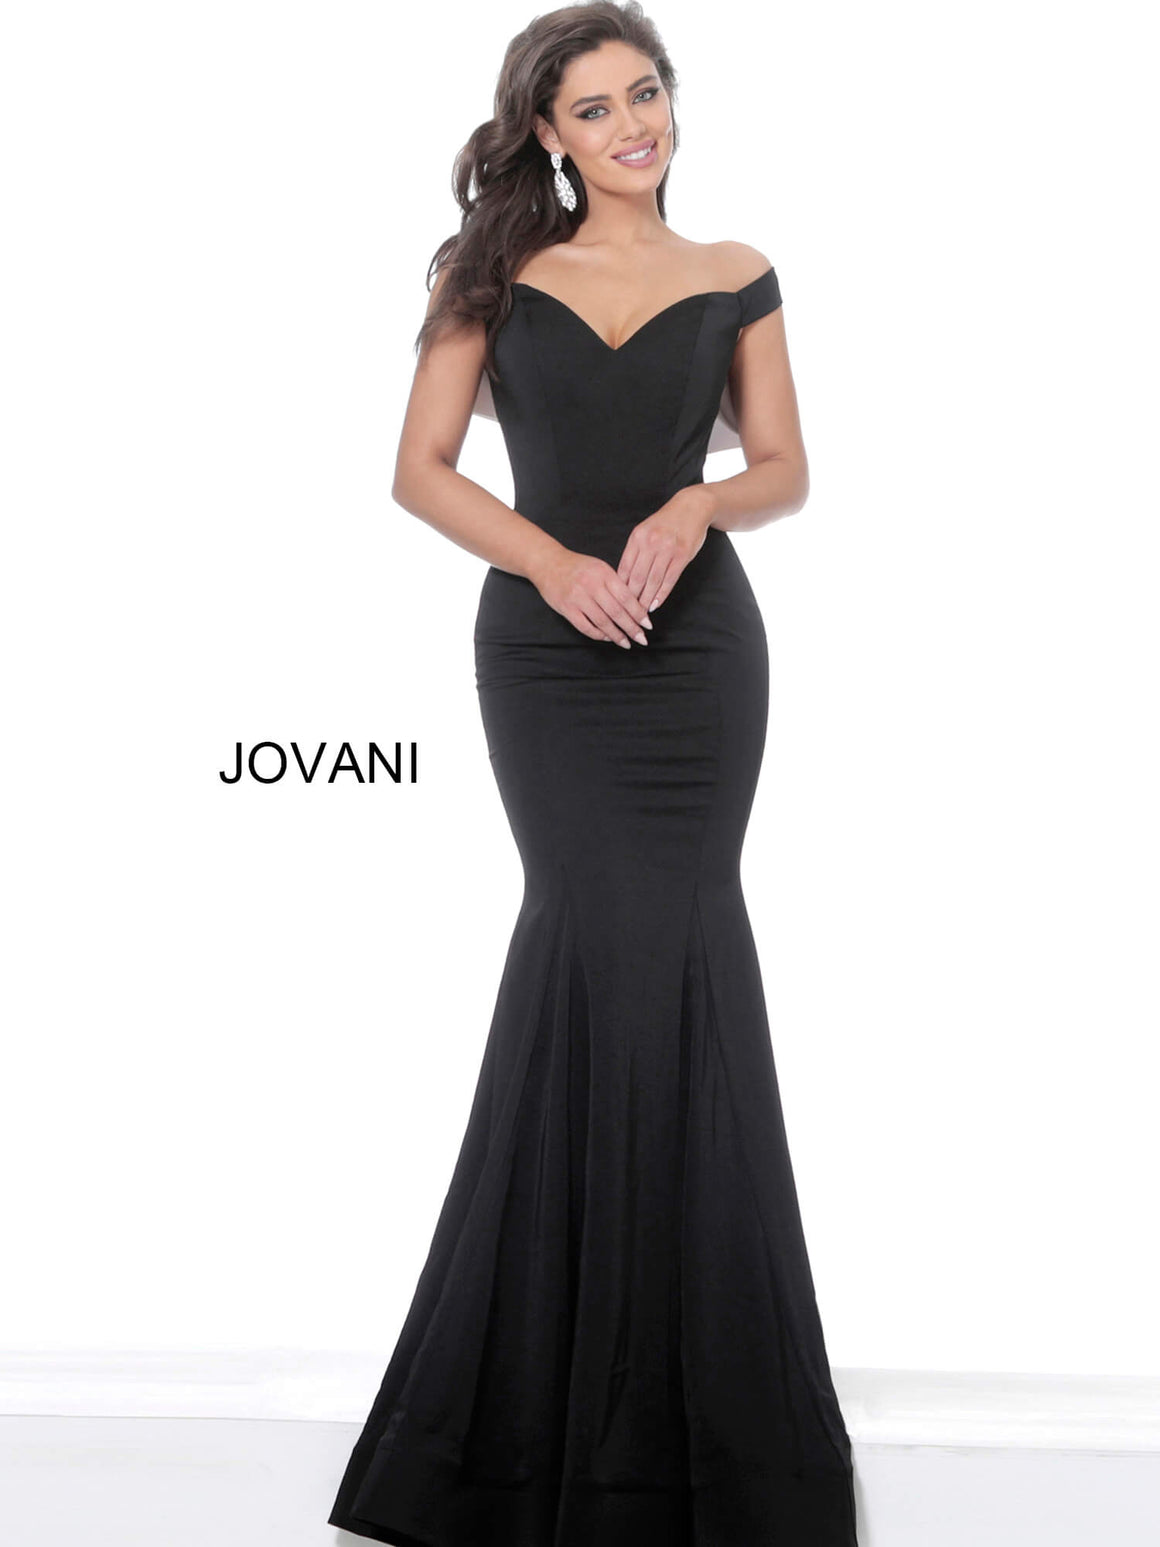 Jovani 3987 Black Off the Shoulder Mermaid Evening Dress